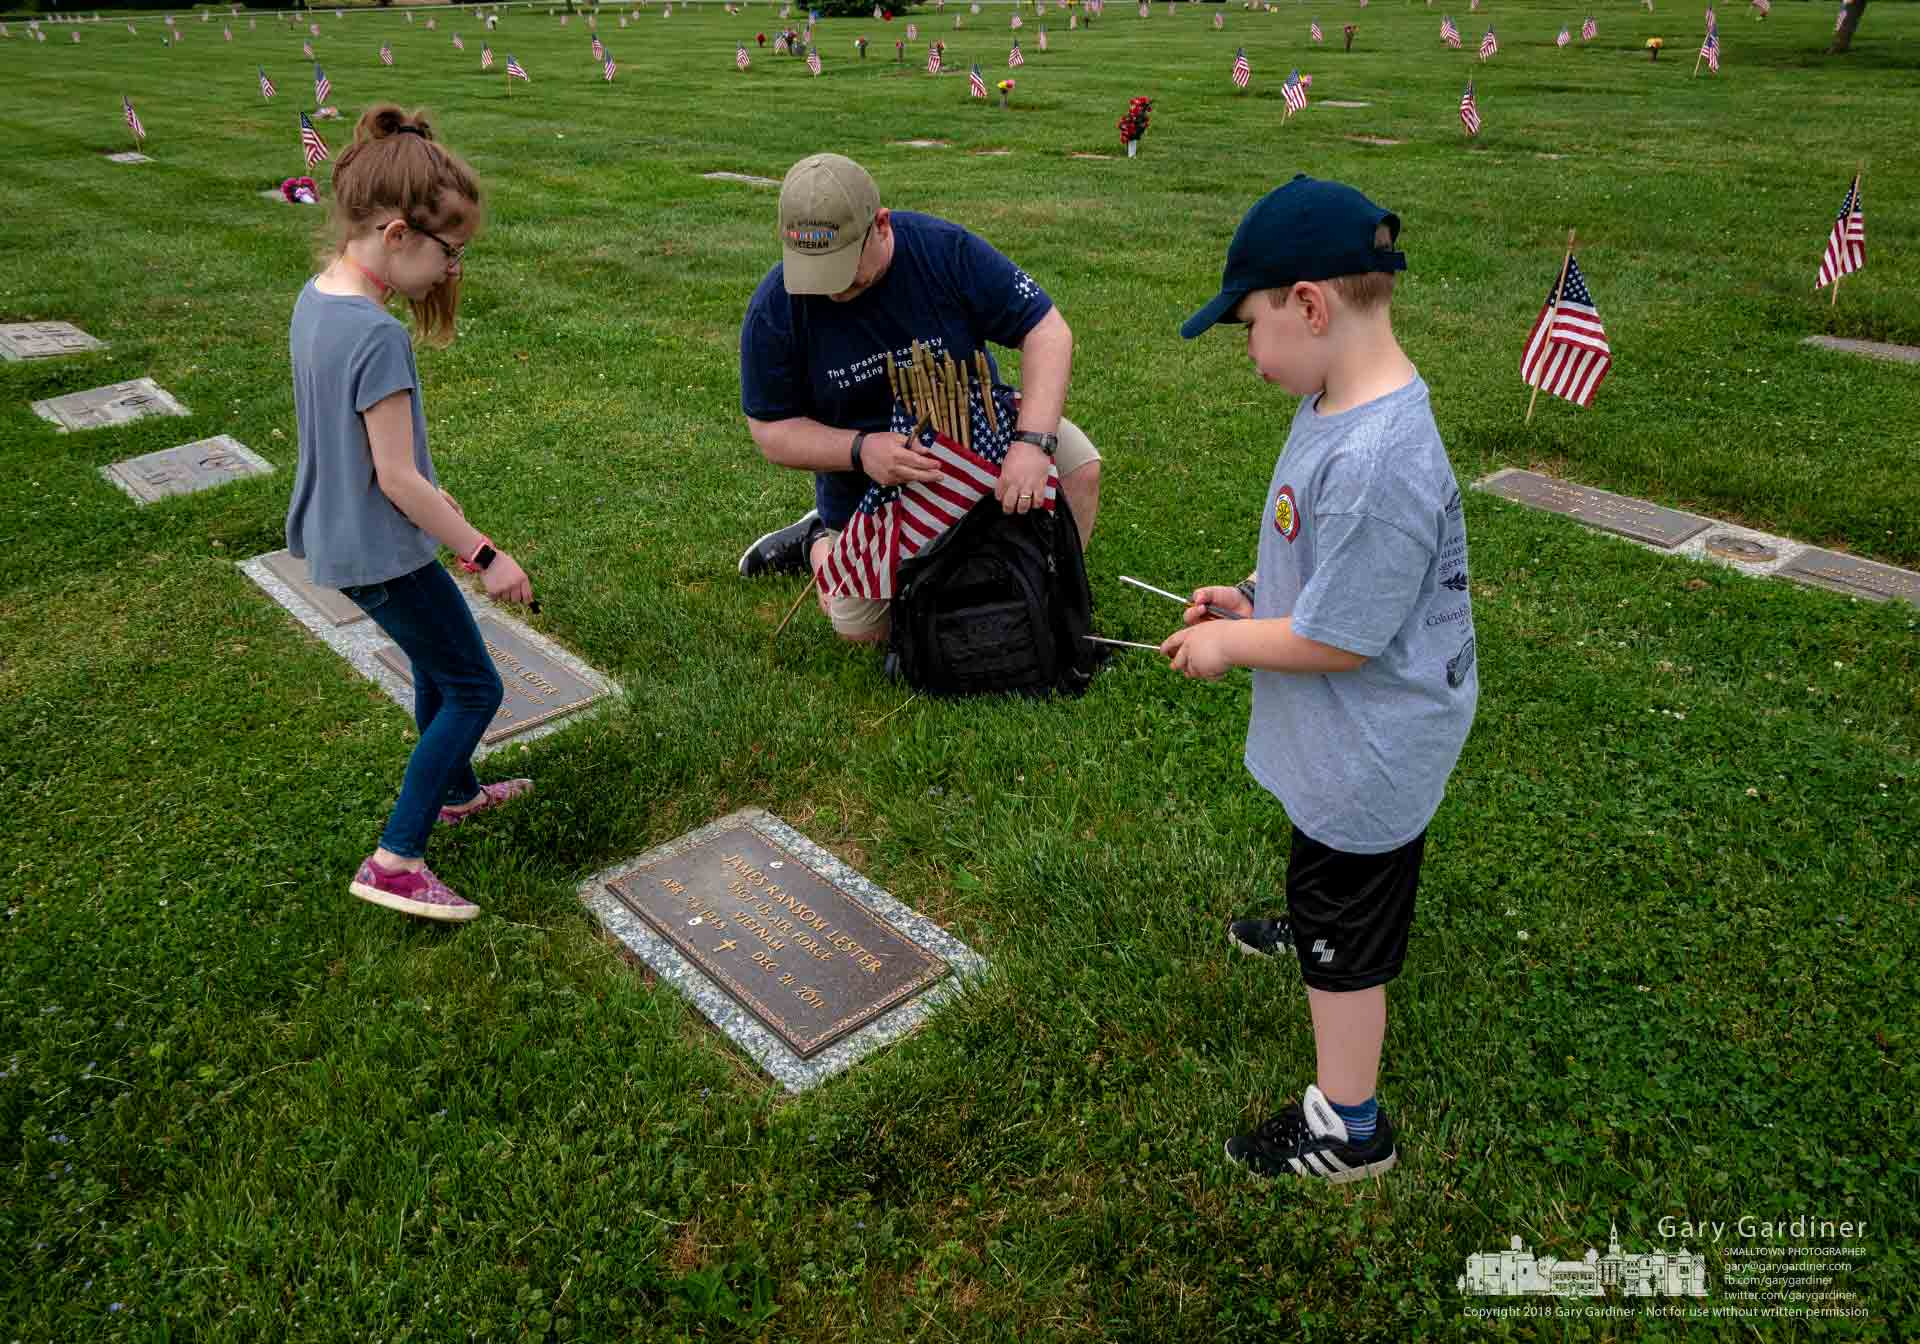 Retired Army veteran David Troutman, his two children, and members of the American Legion Post place American flags on the graves of veterans at North Lawn Cemetery in Westerville in preparation for Memorial Day Monday. My Final Photo for May 26, 2018.